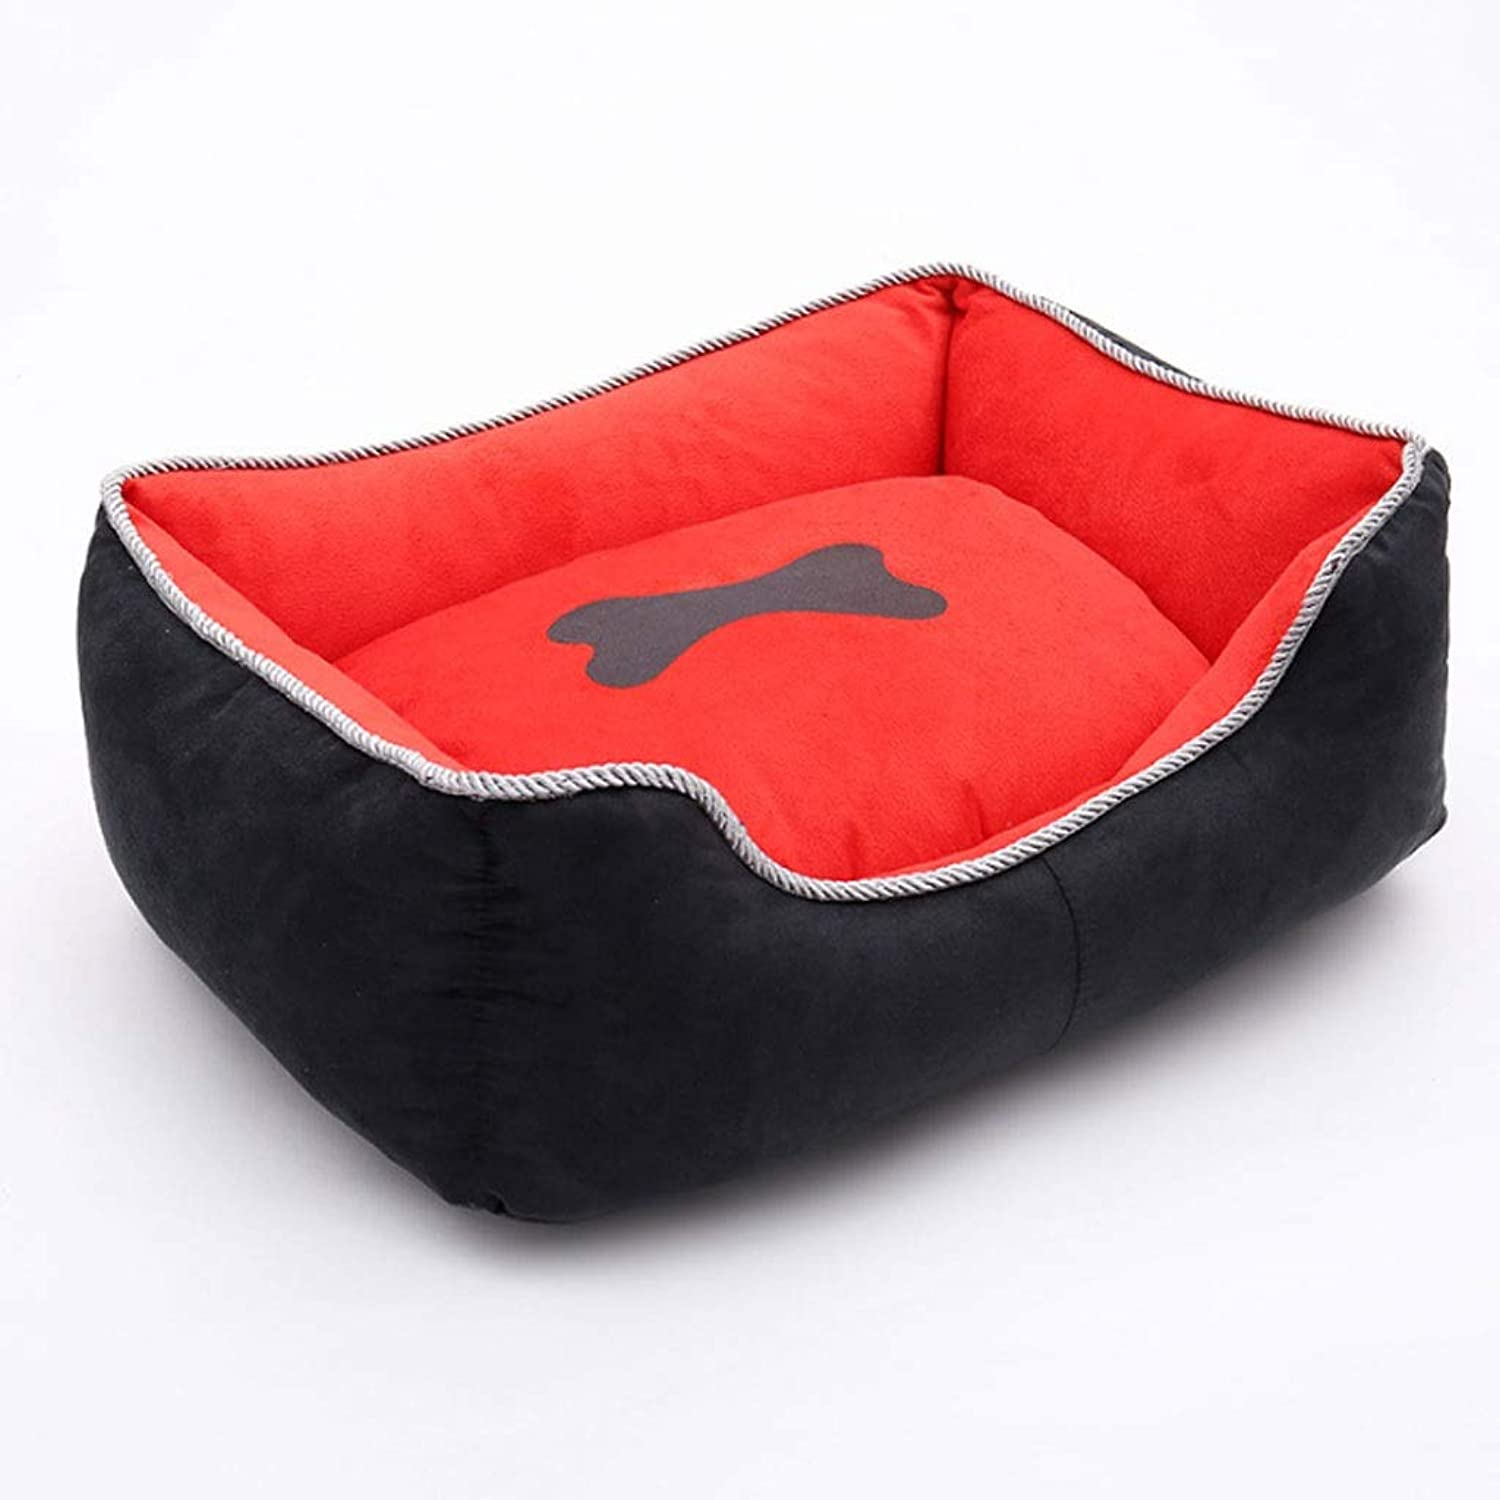 BarryL Dog Bed Cat Bed Independent Liner Removable And Washable Pet Nest Four Seasons Pet Supplies Large, Medium And Small Dogs Bones Kennel Pet Bed (color   Red, Size   M)